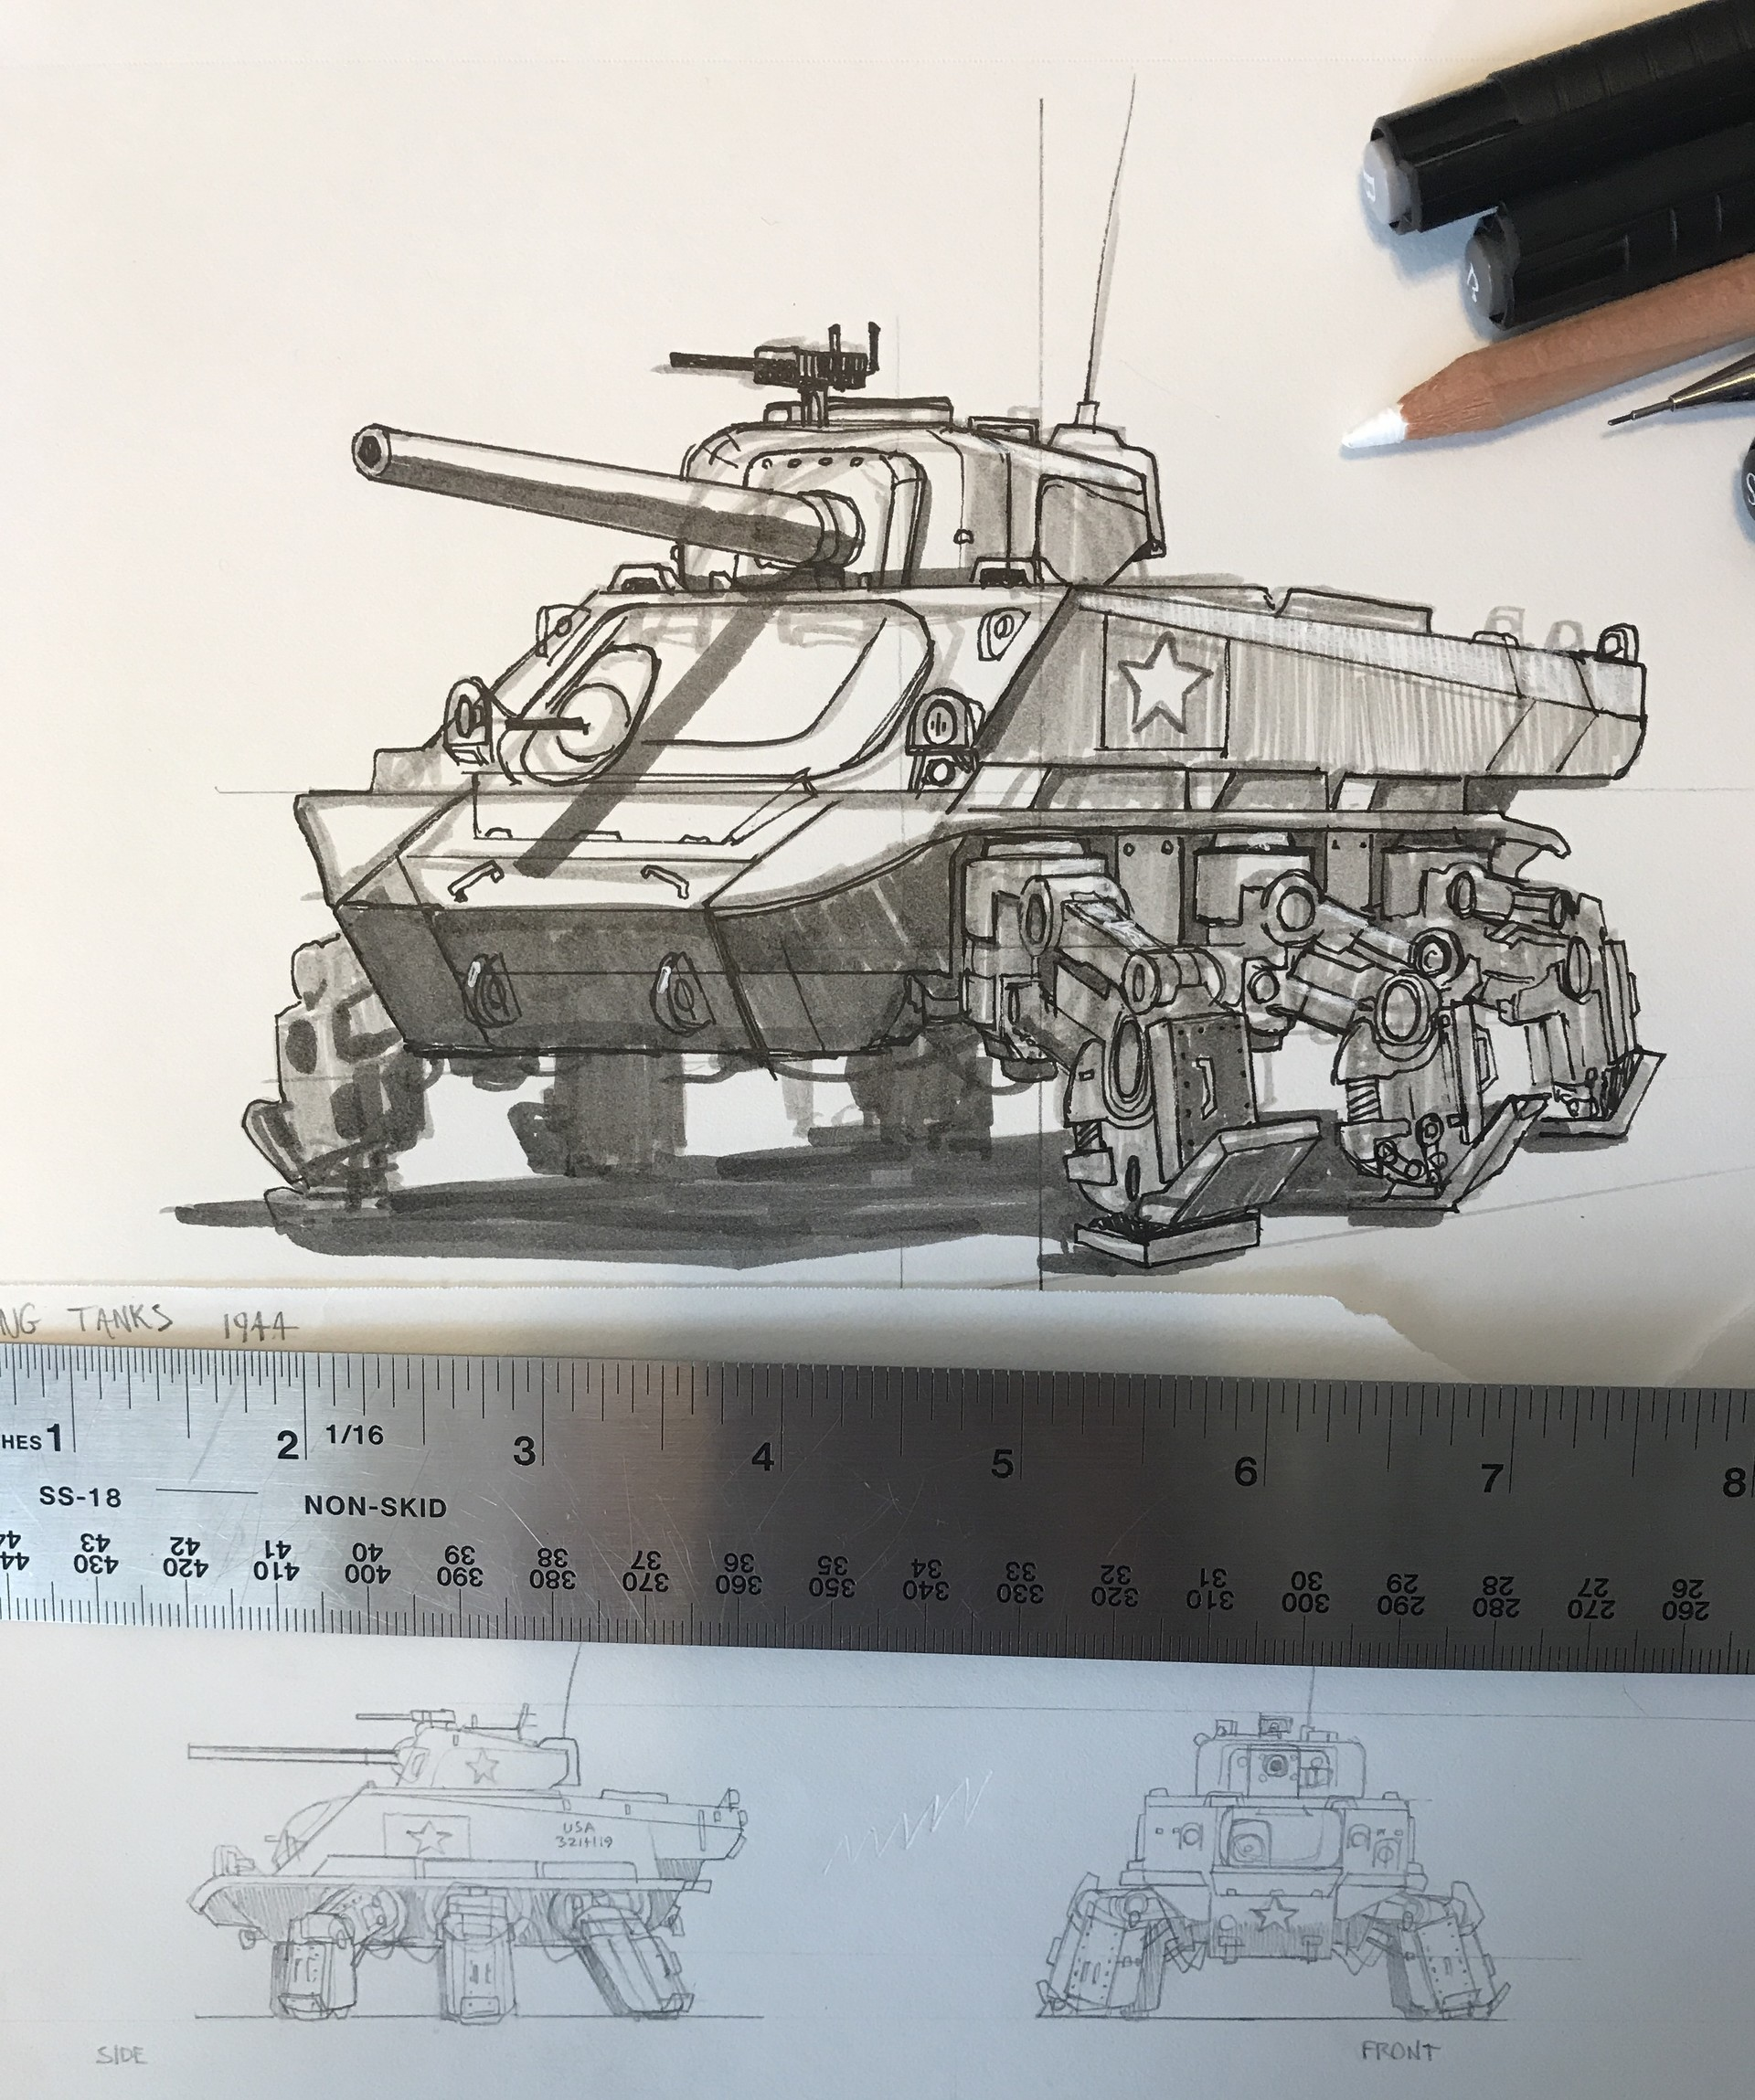 The early pencil sketches